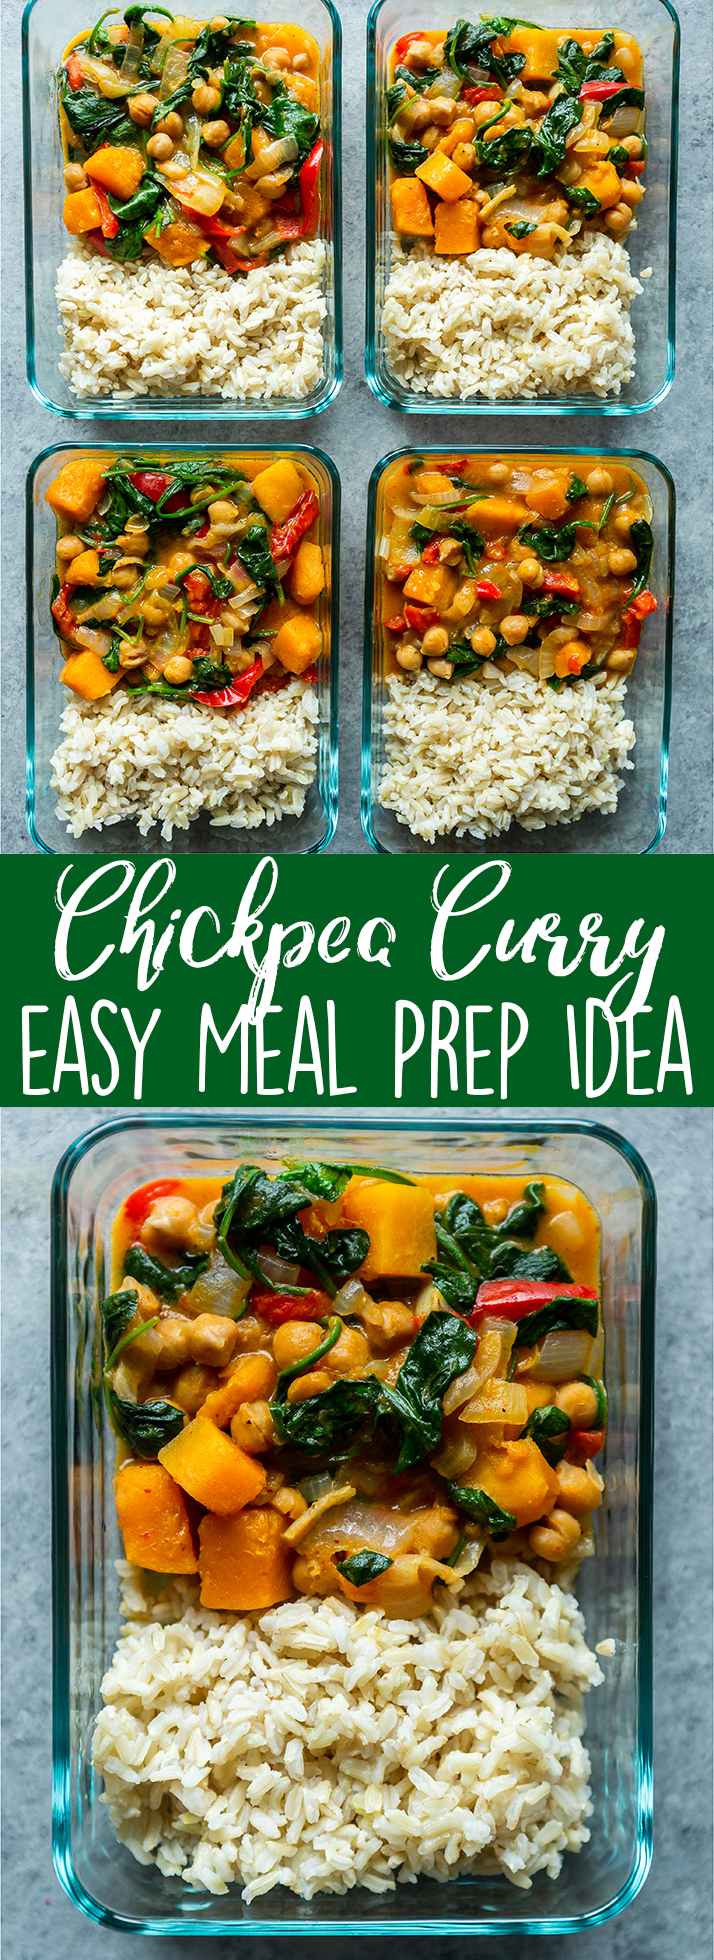 This easy Chickpea Curry is a great healthy meal prep idea, as well as a quick weeknight dinner recipe! Packed with veggies, this chickpea curry is also gluten free and easily made vegan! #mealprep #meatless #healthydinner | Meal Prep Idea | Easy and healthy dinner | quick dinner recipe | Meatless monday | Plant Based | vegan option | Gluten Free | Quick dinner idea